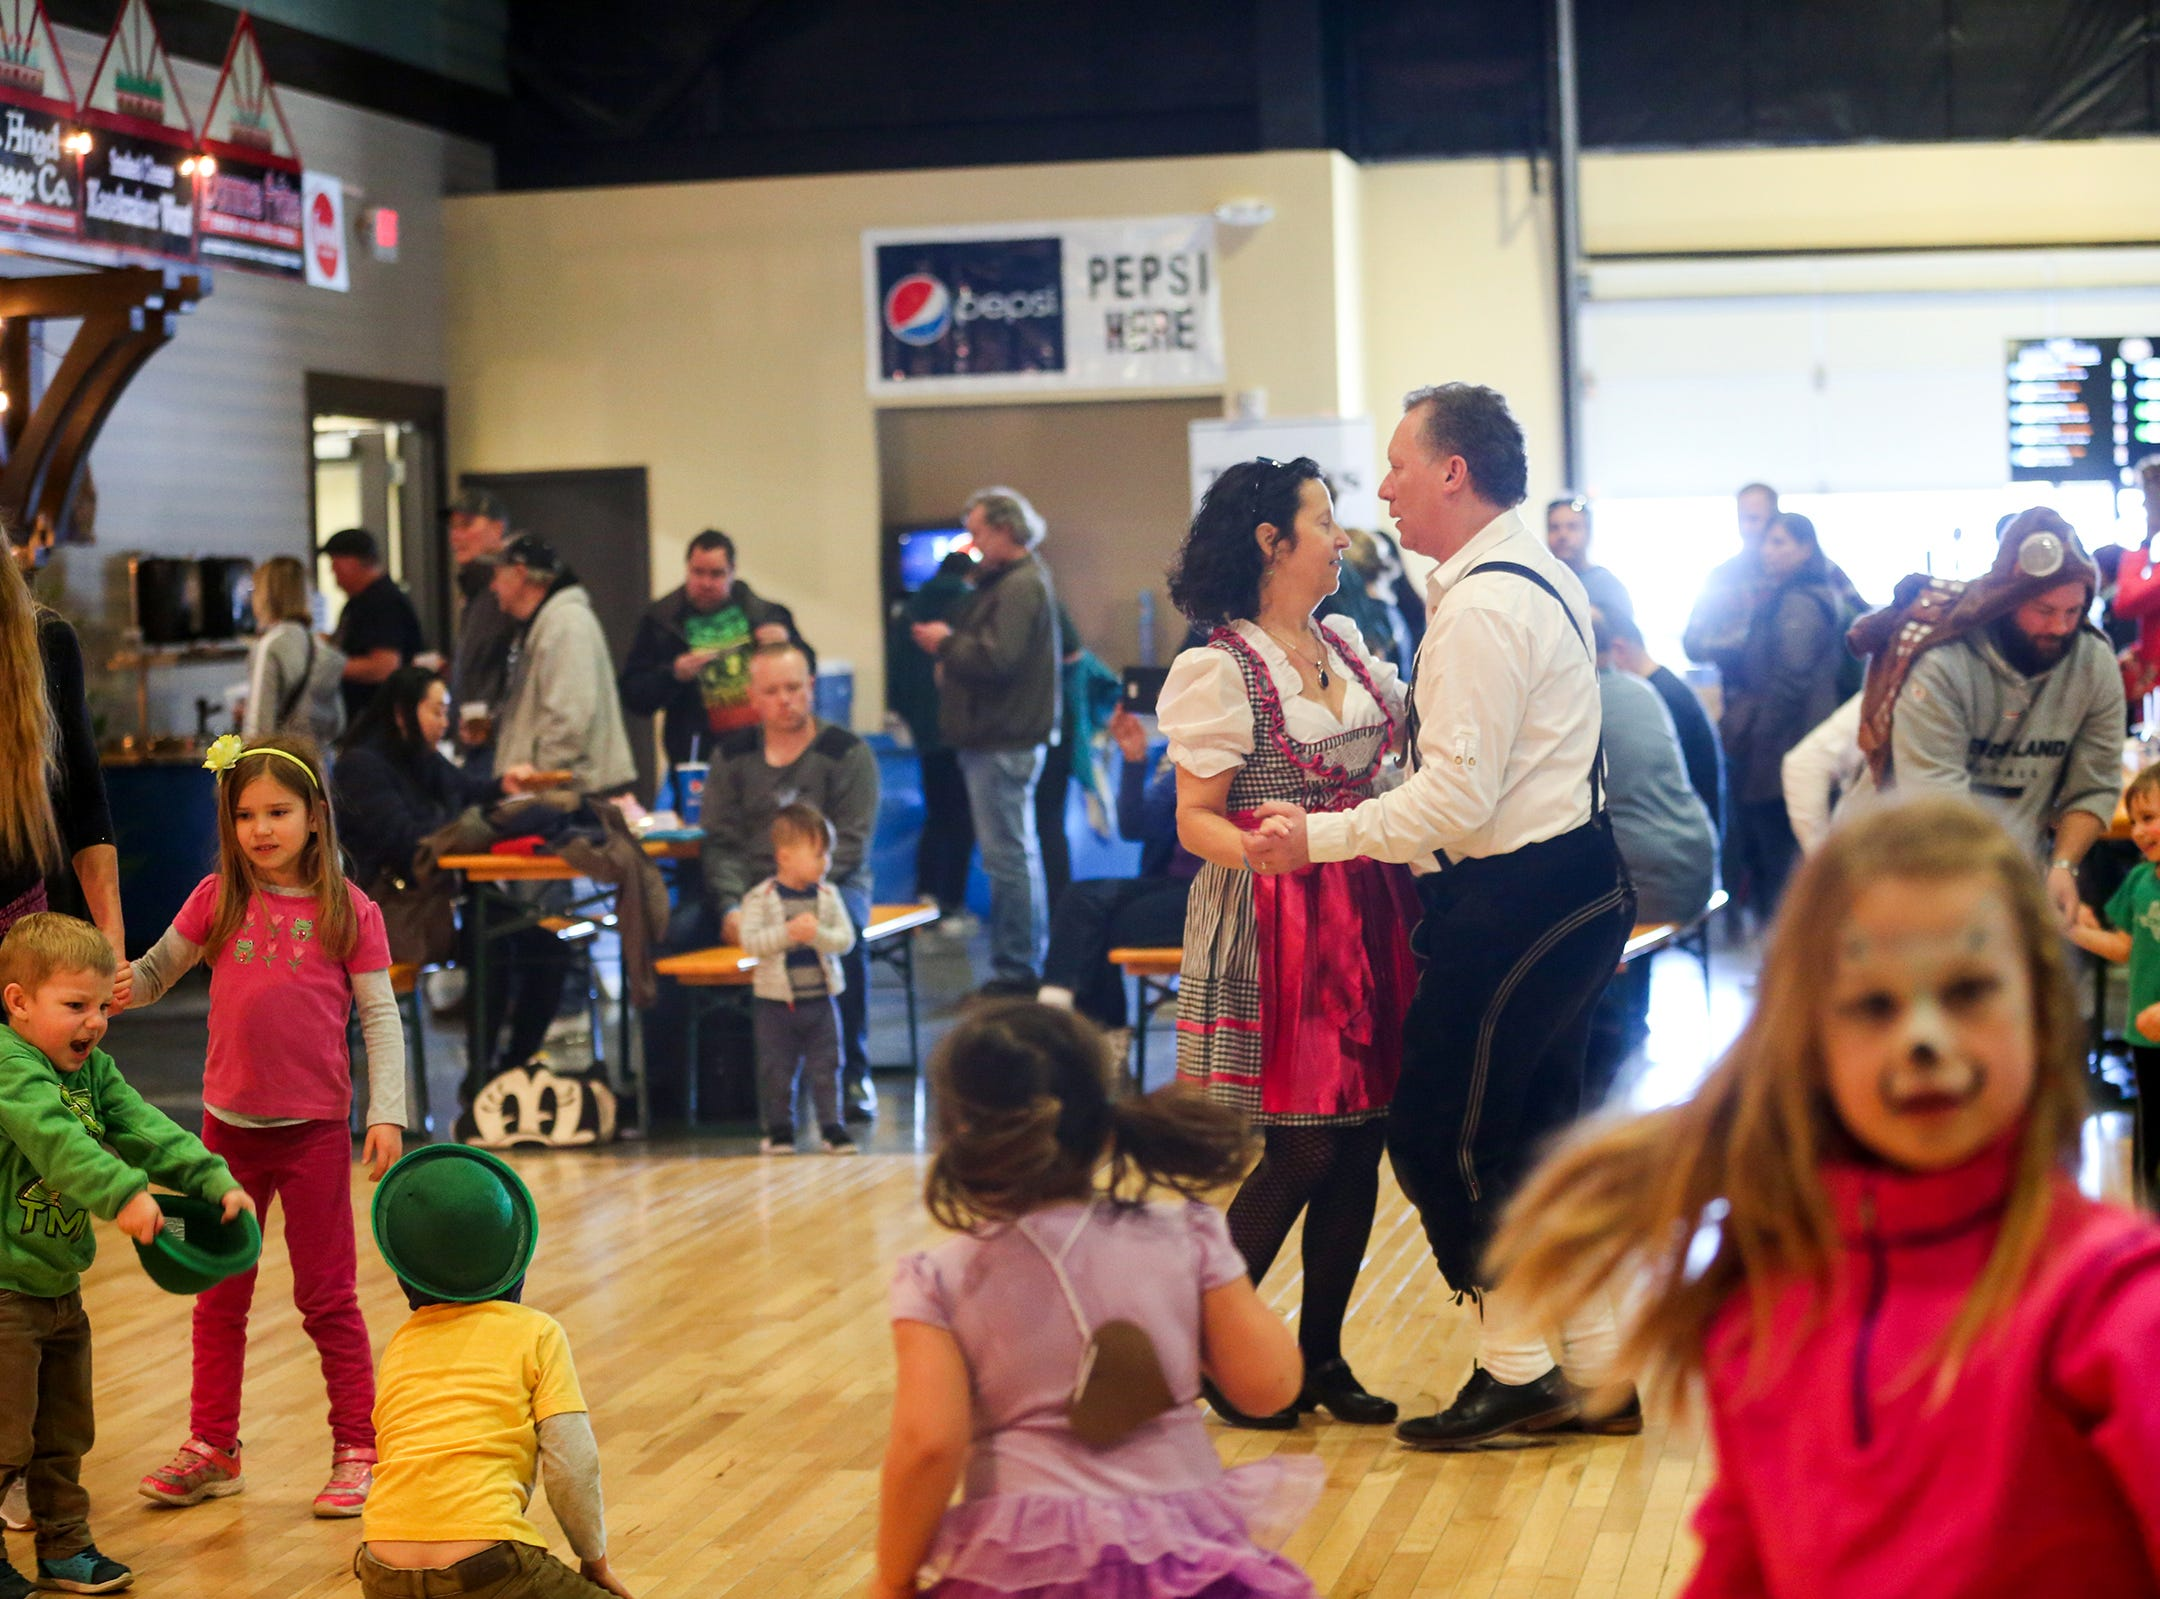 Moira Lieberson and Jeff Hamling dance around children at the annual Volksfest in Mt. Angel on Saturday, March 2, 2019. The kids area had games and face painting.